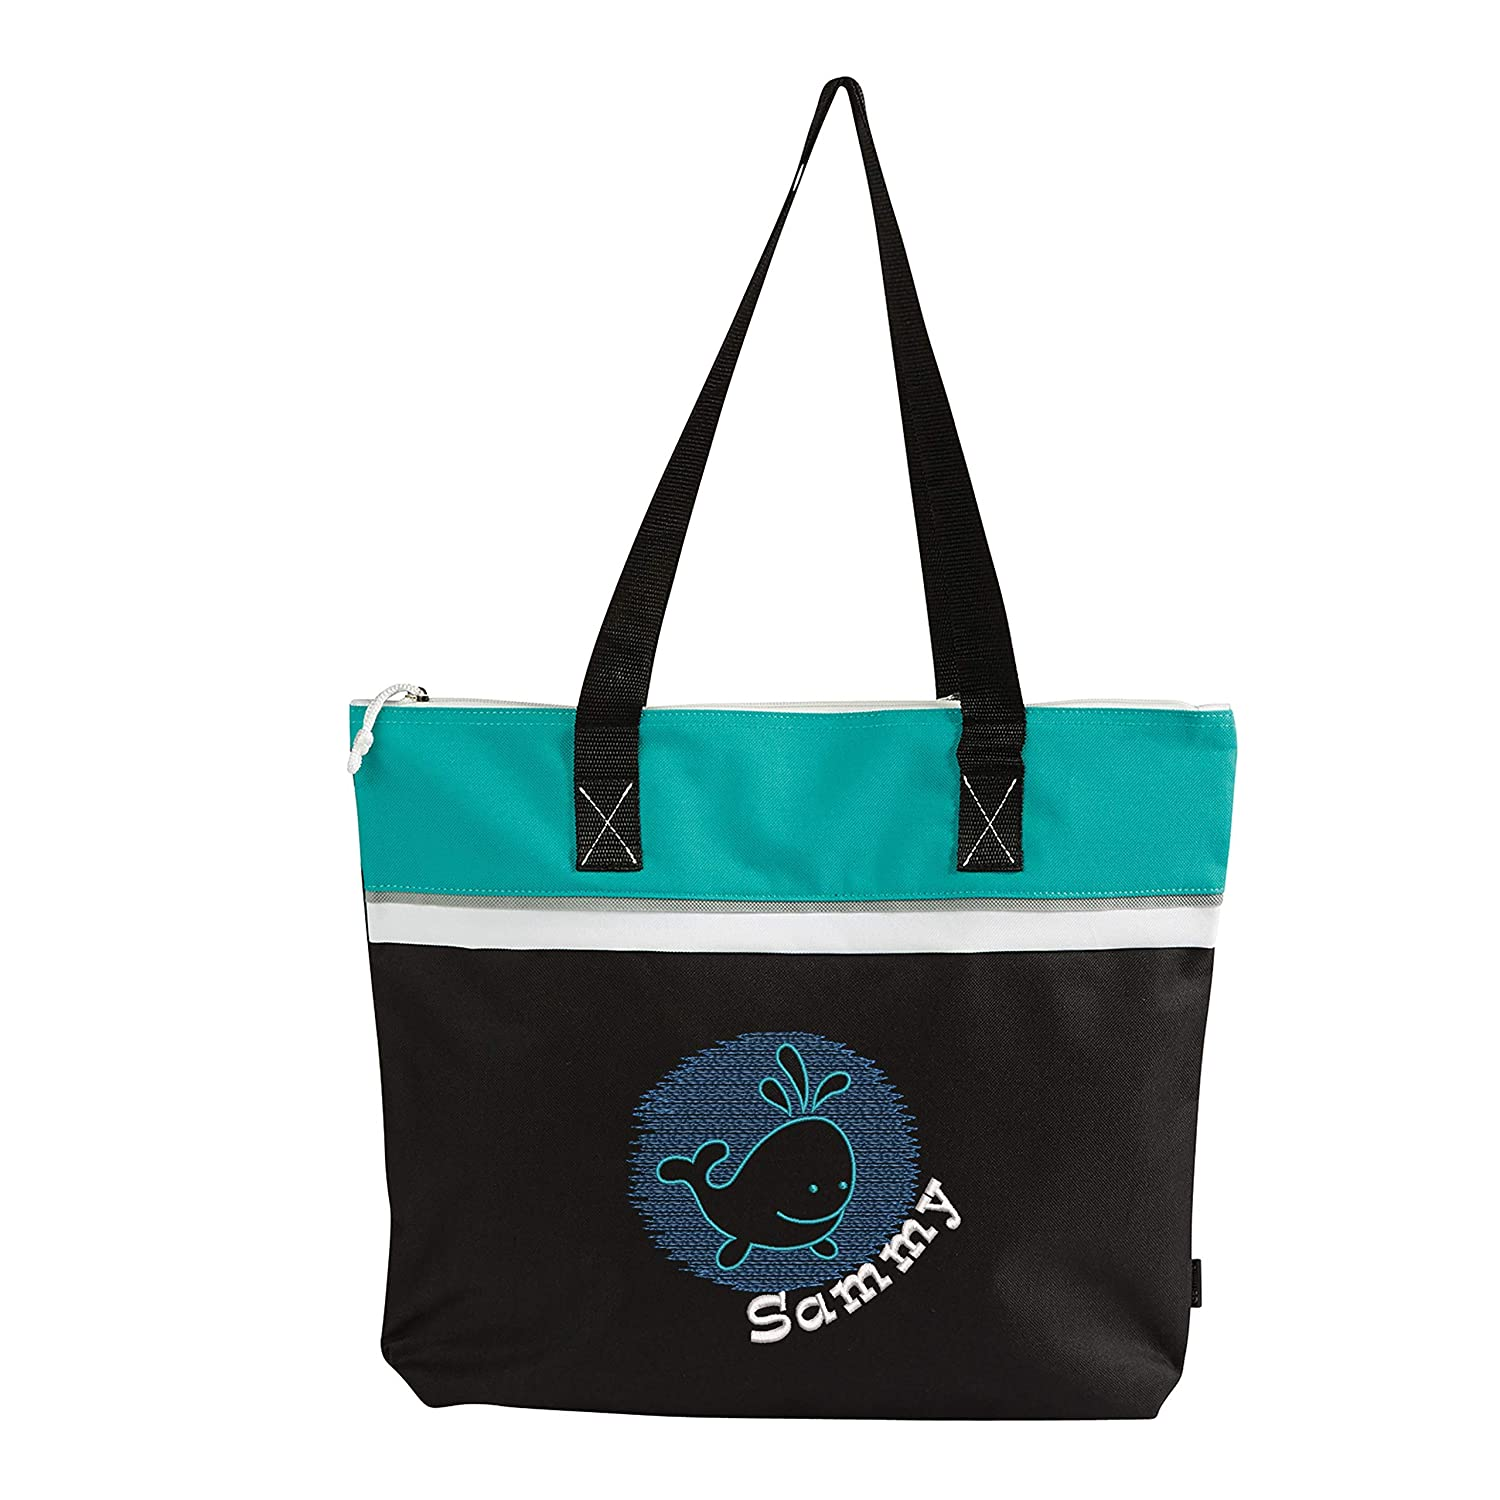 Underwater Whale Personalized Small Embroidered Be super welcome Limited time for free shipping Tote